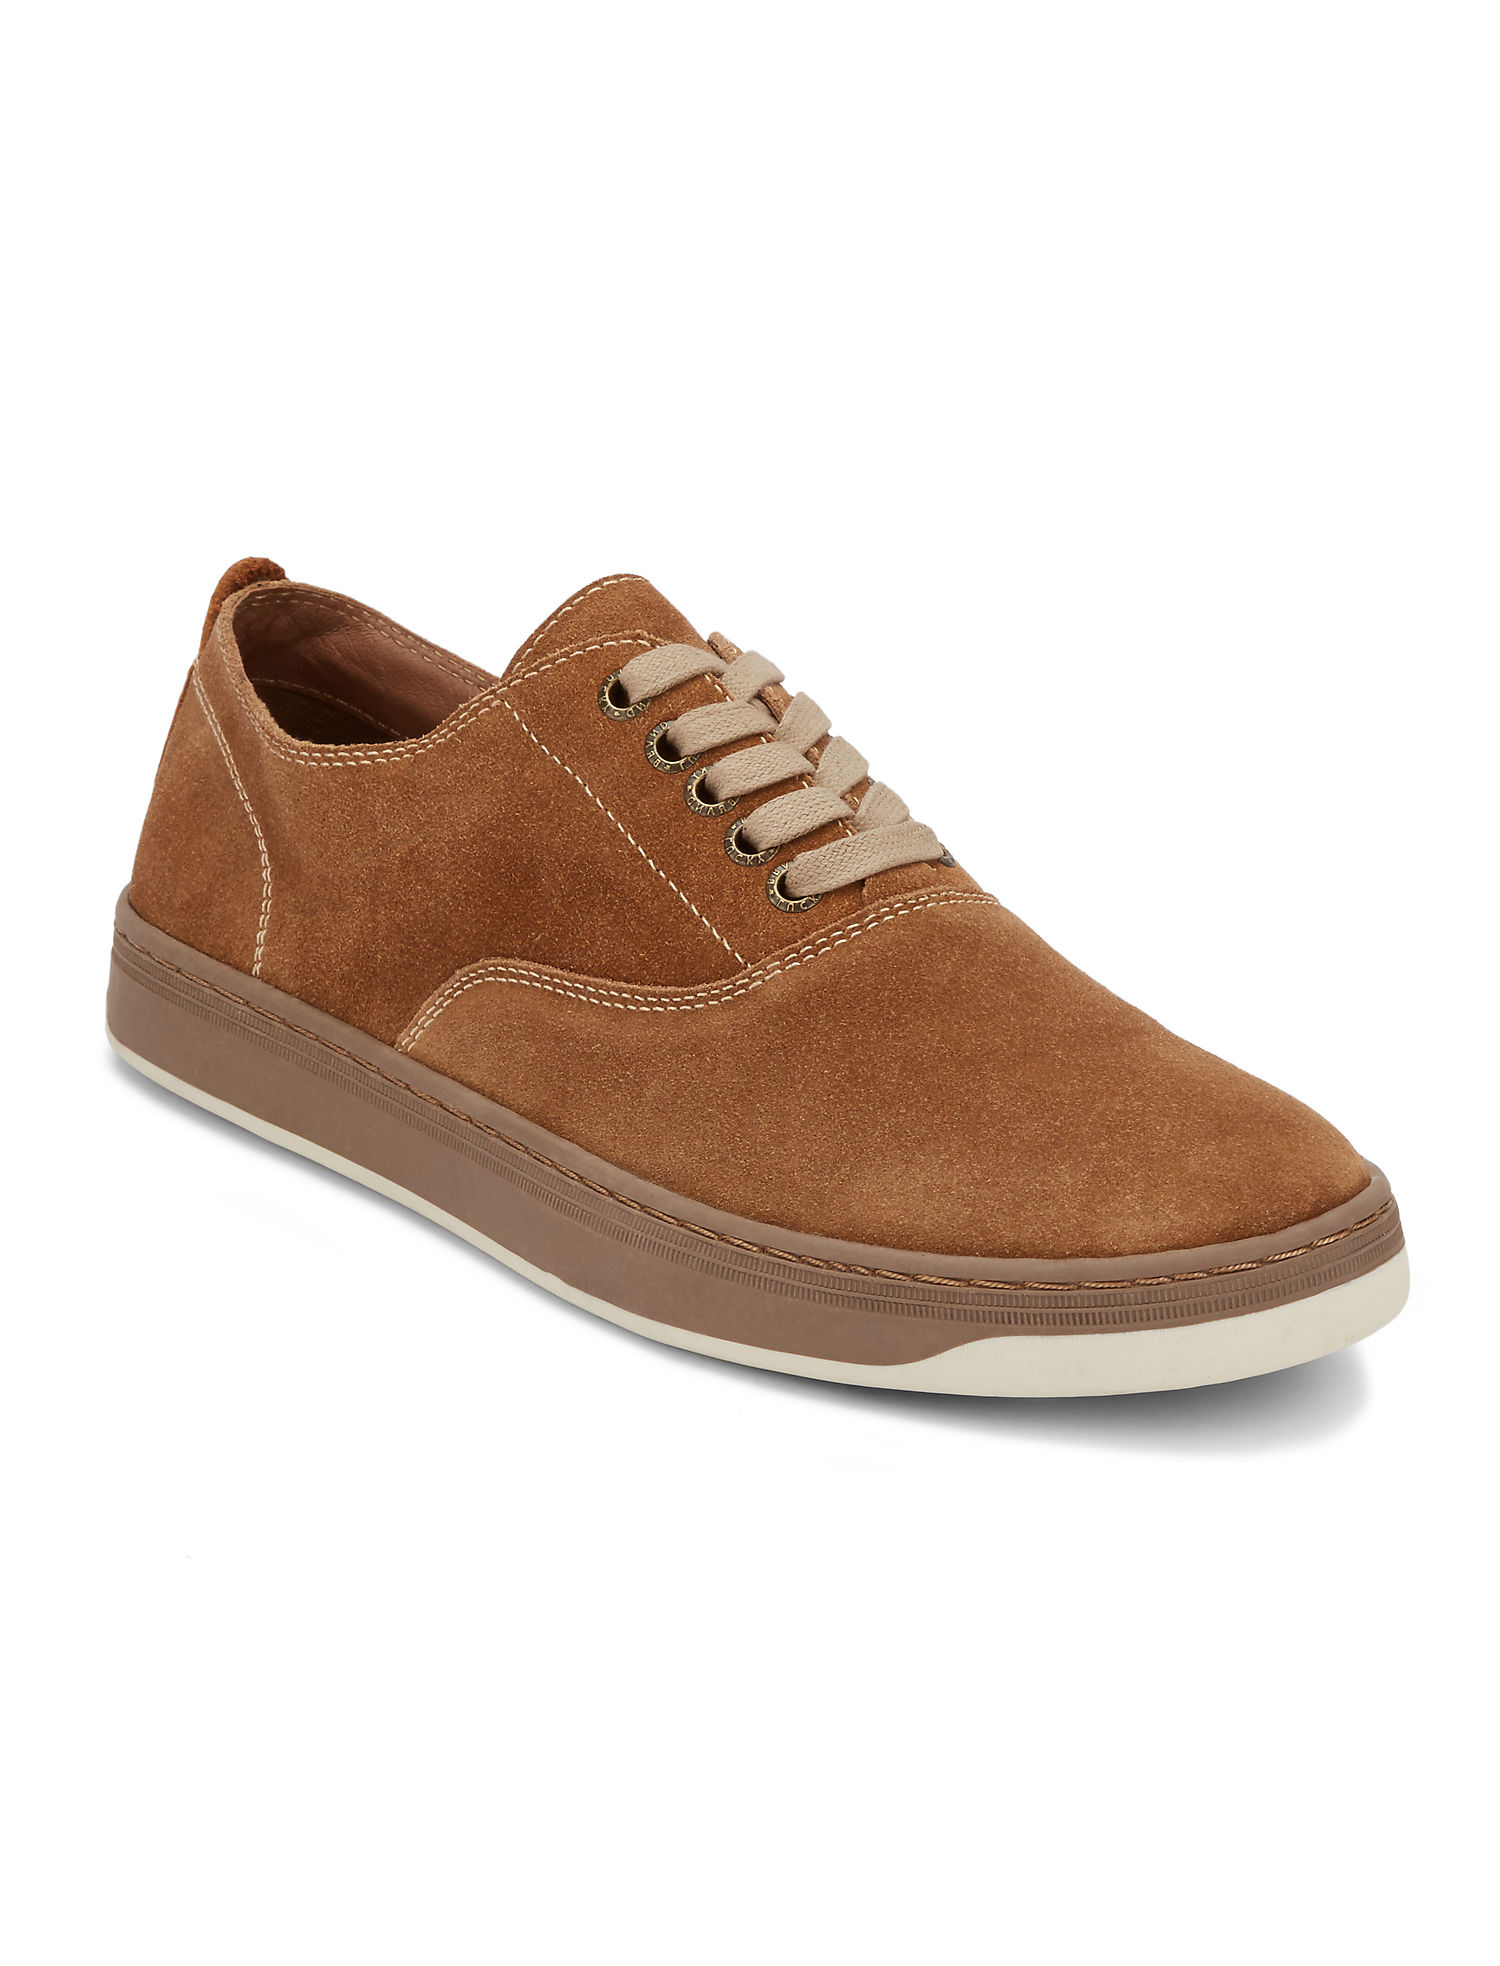 LUCKY BRAND FOOTWEAR Parkes Shoes